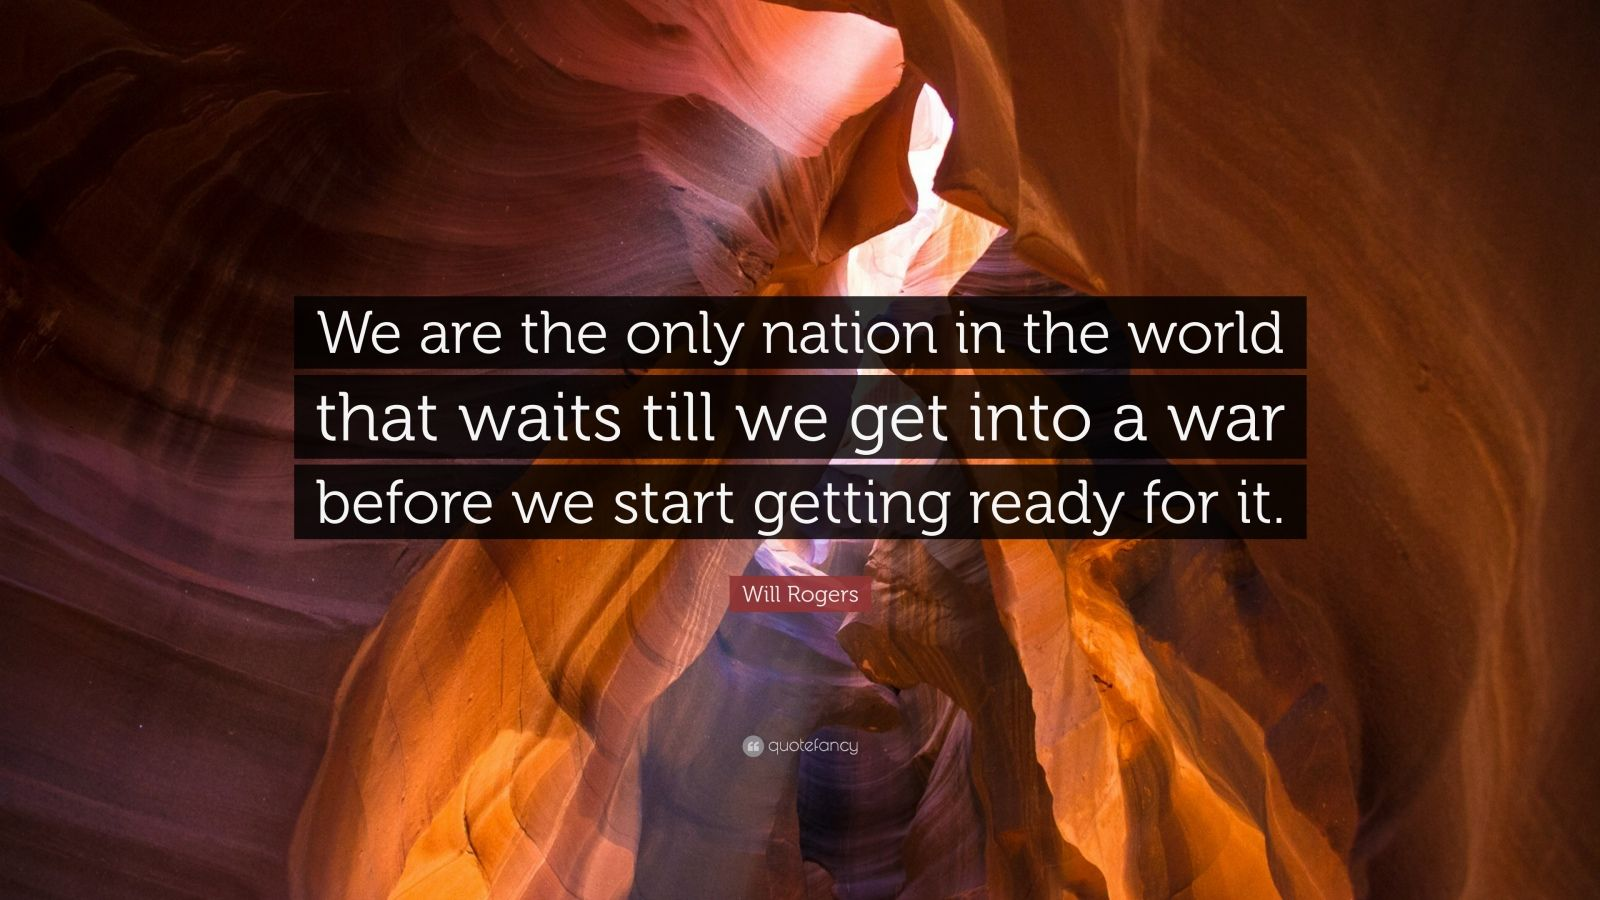 """Will Rogers Quote: """"We are the only nation in the world that waits till we get into a war before we start getting ready for it."""""""